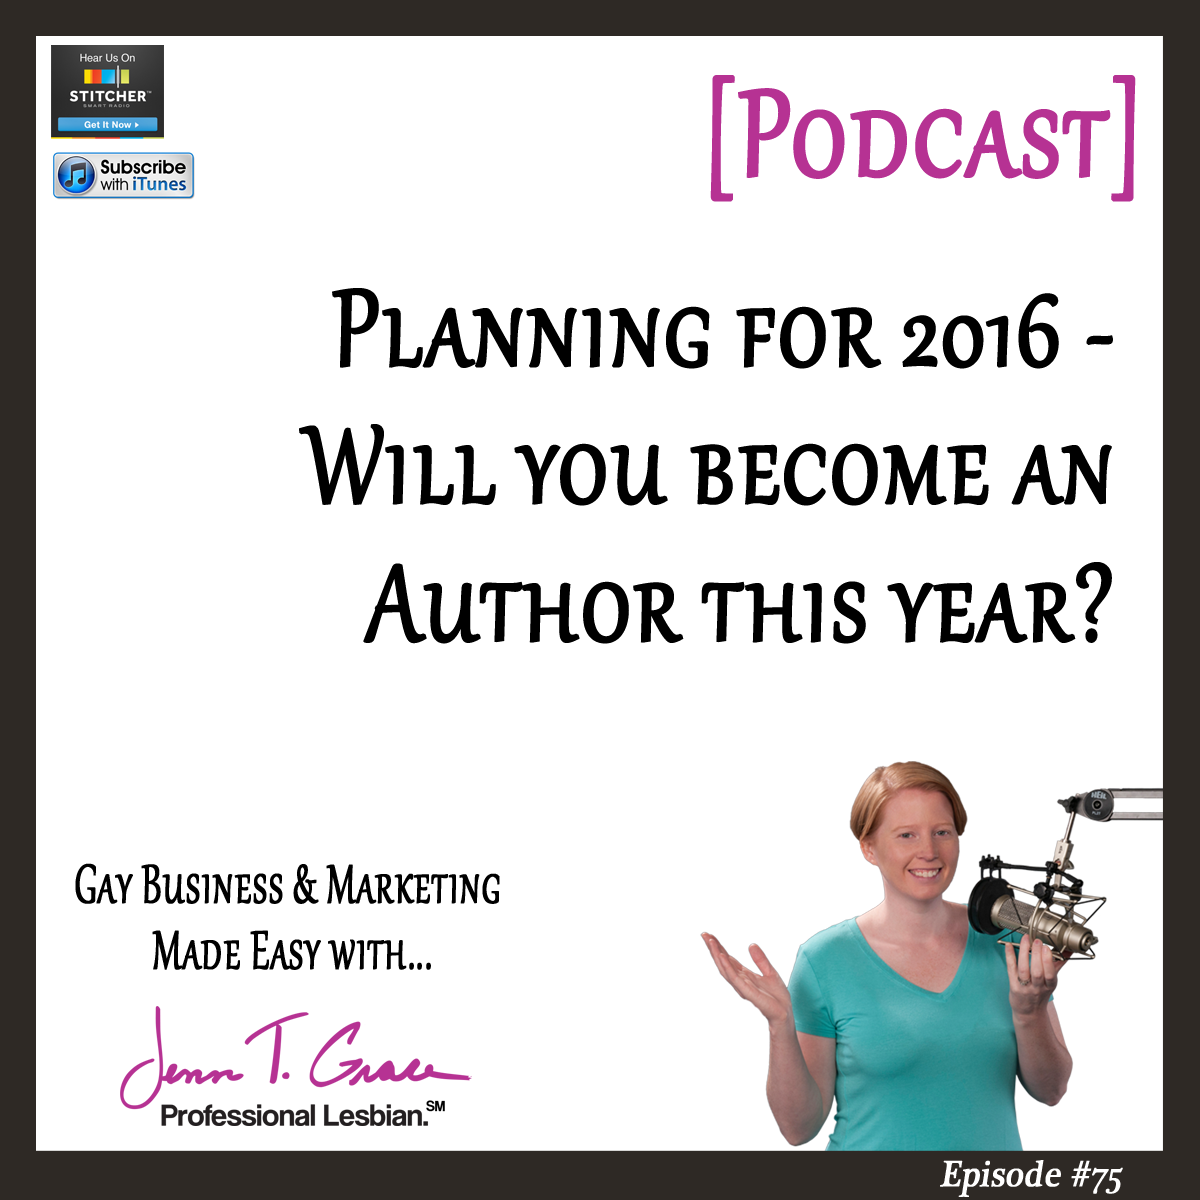 #75: Planning for 2016 - will you become an author in 2016?